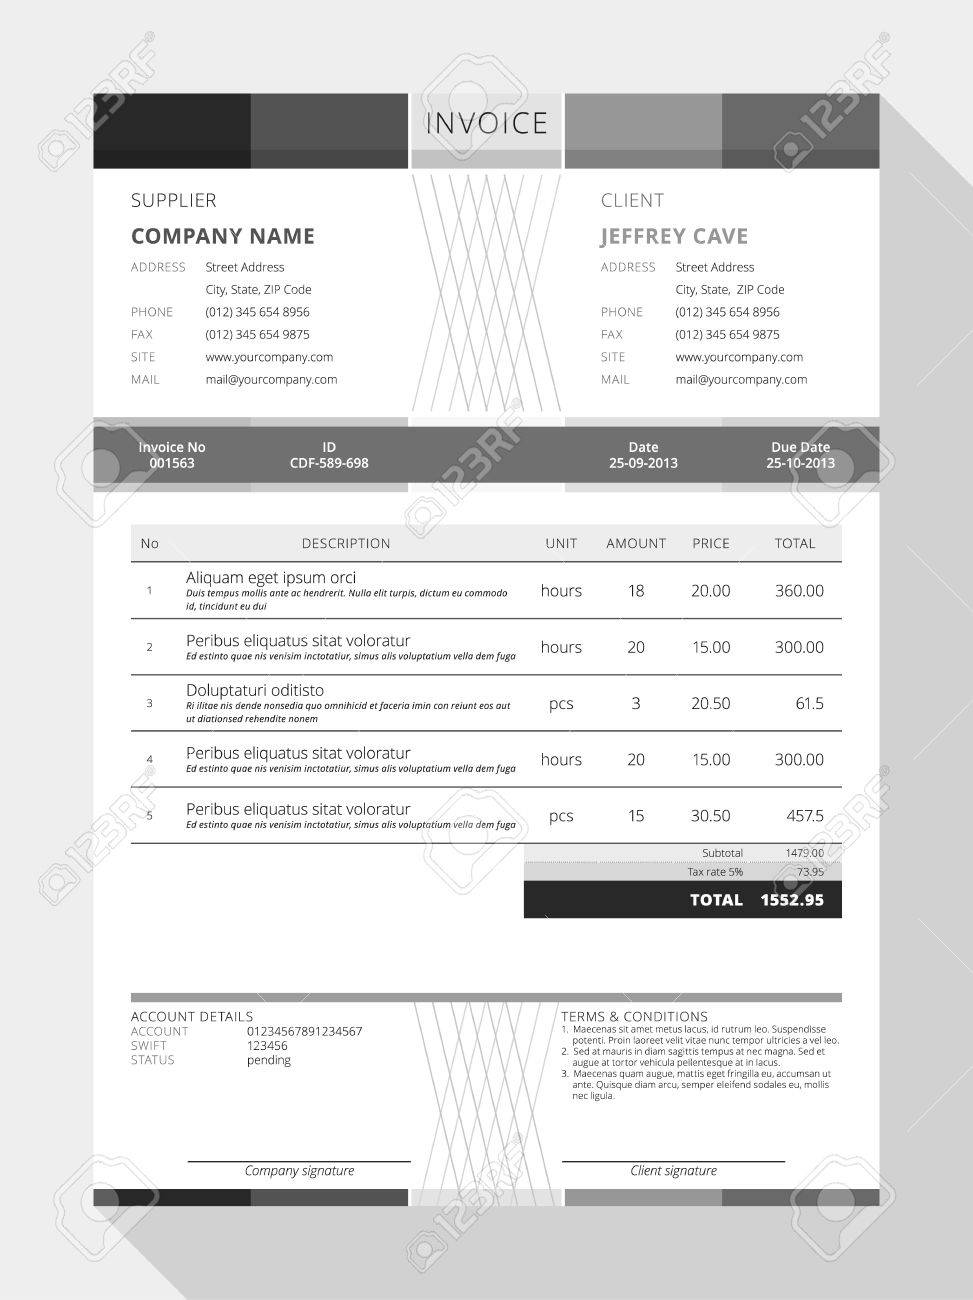 Ebitus  Picturesque Design An Invoice  Professional Graphic Design Invoice  With Outstanding Vector Customizable Invoice Form Template Design Vector   Design An Invoice With Astounding Eftpos Receipt Also Receipt Of Purchase Template In Addition Add Read Receipt Gmail And Mtnl Bill Payment Receipt As Well As Template Receipt For Services Additionally Samples Of Rent Receipts From Happytomco With Ebitus  Outstanding Design An Invoice  Professional Graphic Design Invoice  With Astounding Vector Customizable Invoice Form Template Design Vector   Design An Invoice And Picturesque Eftpos Receipt Also Receipt Of Purchase Template In Addition Add Read Receipt Gmail From Happytomco